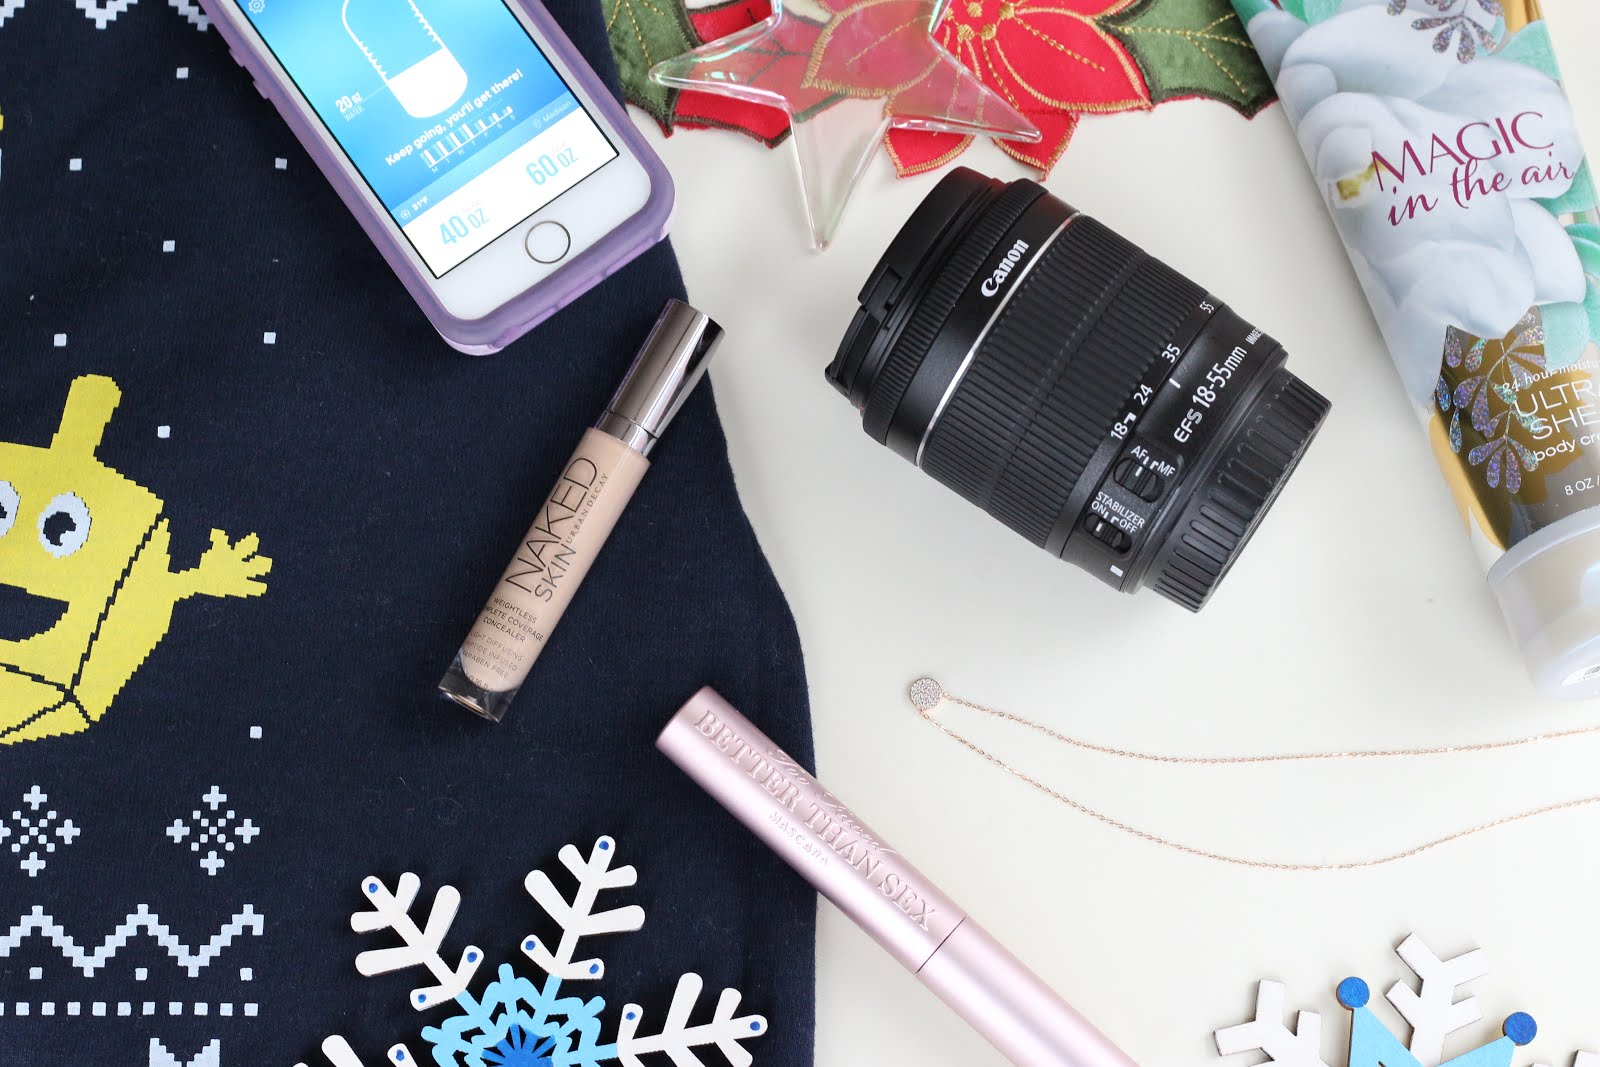 November Favorites: Hanukkah sweatshirt, Too Faced mascara, Urban Decay concealer, Canon Rebel SL1 camera